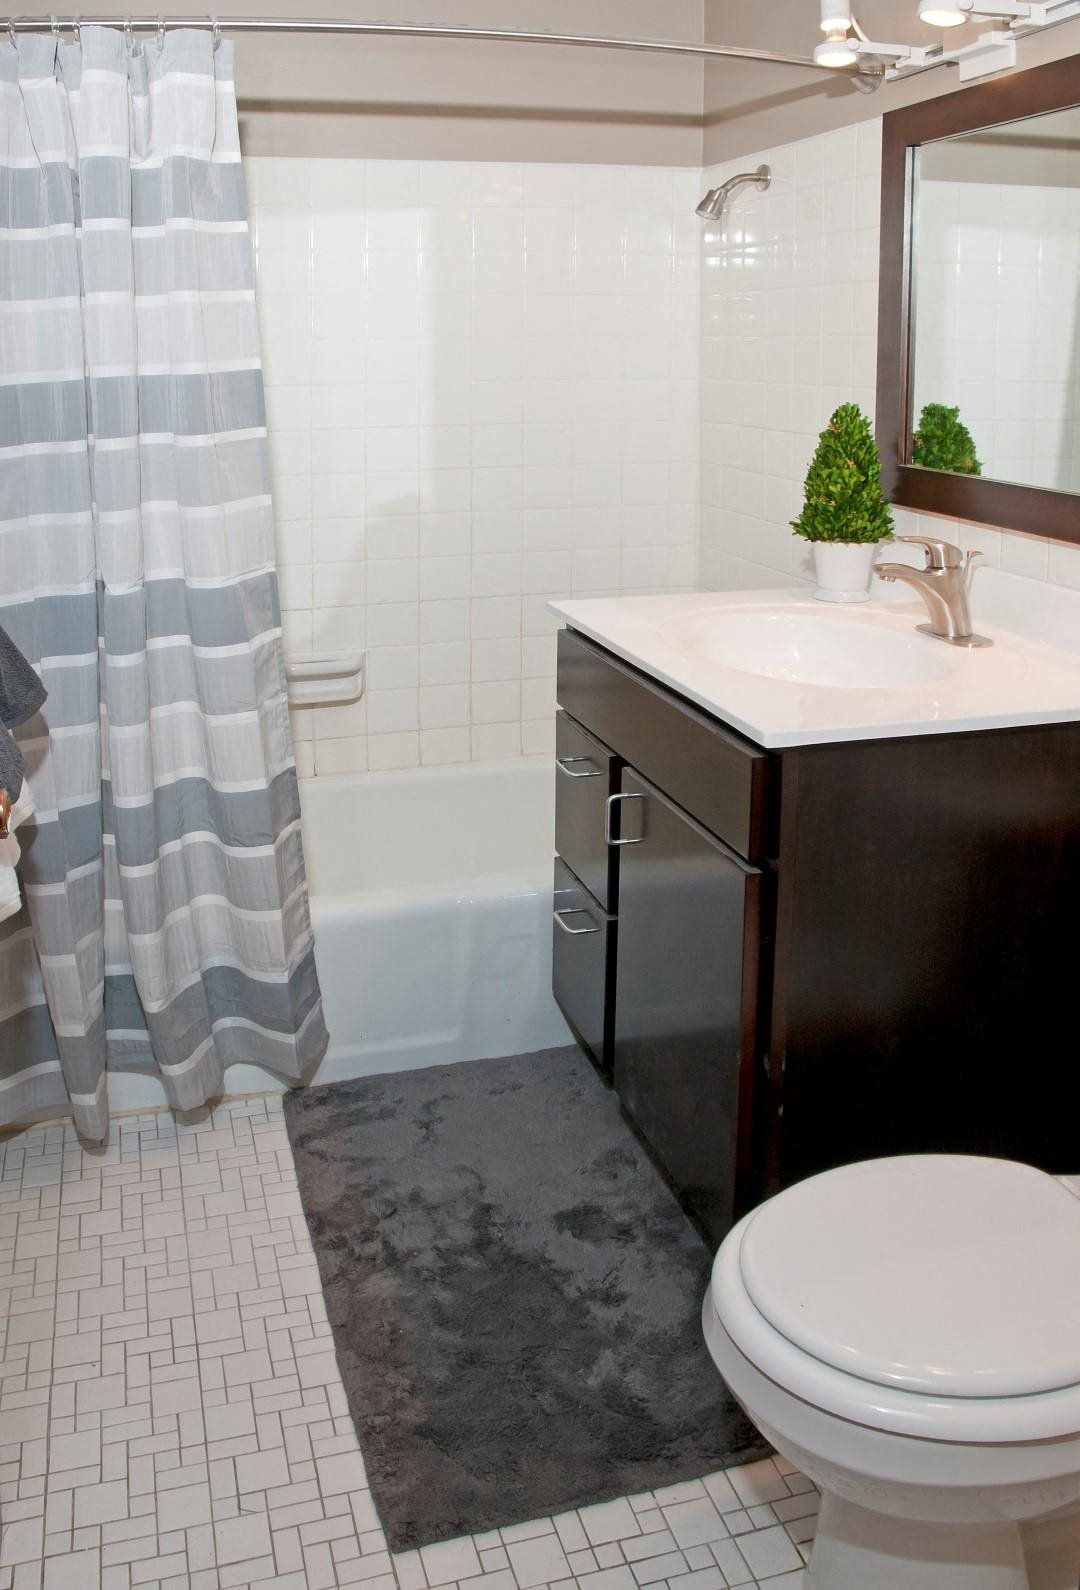 White Tile Bathroom with Large Tub and Shower at 2800 Girard Apartments in Minneapolis, MN